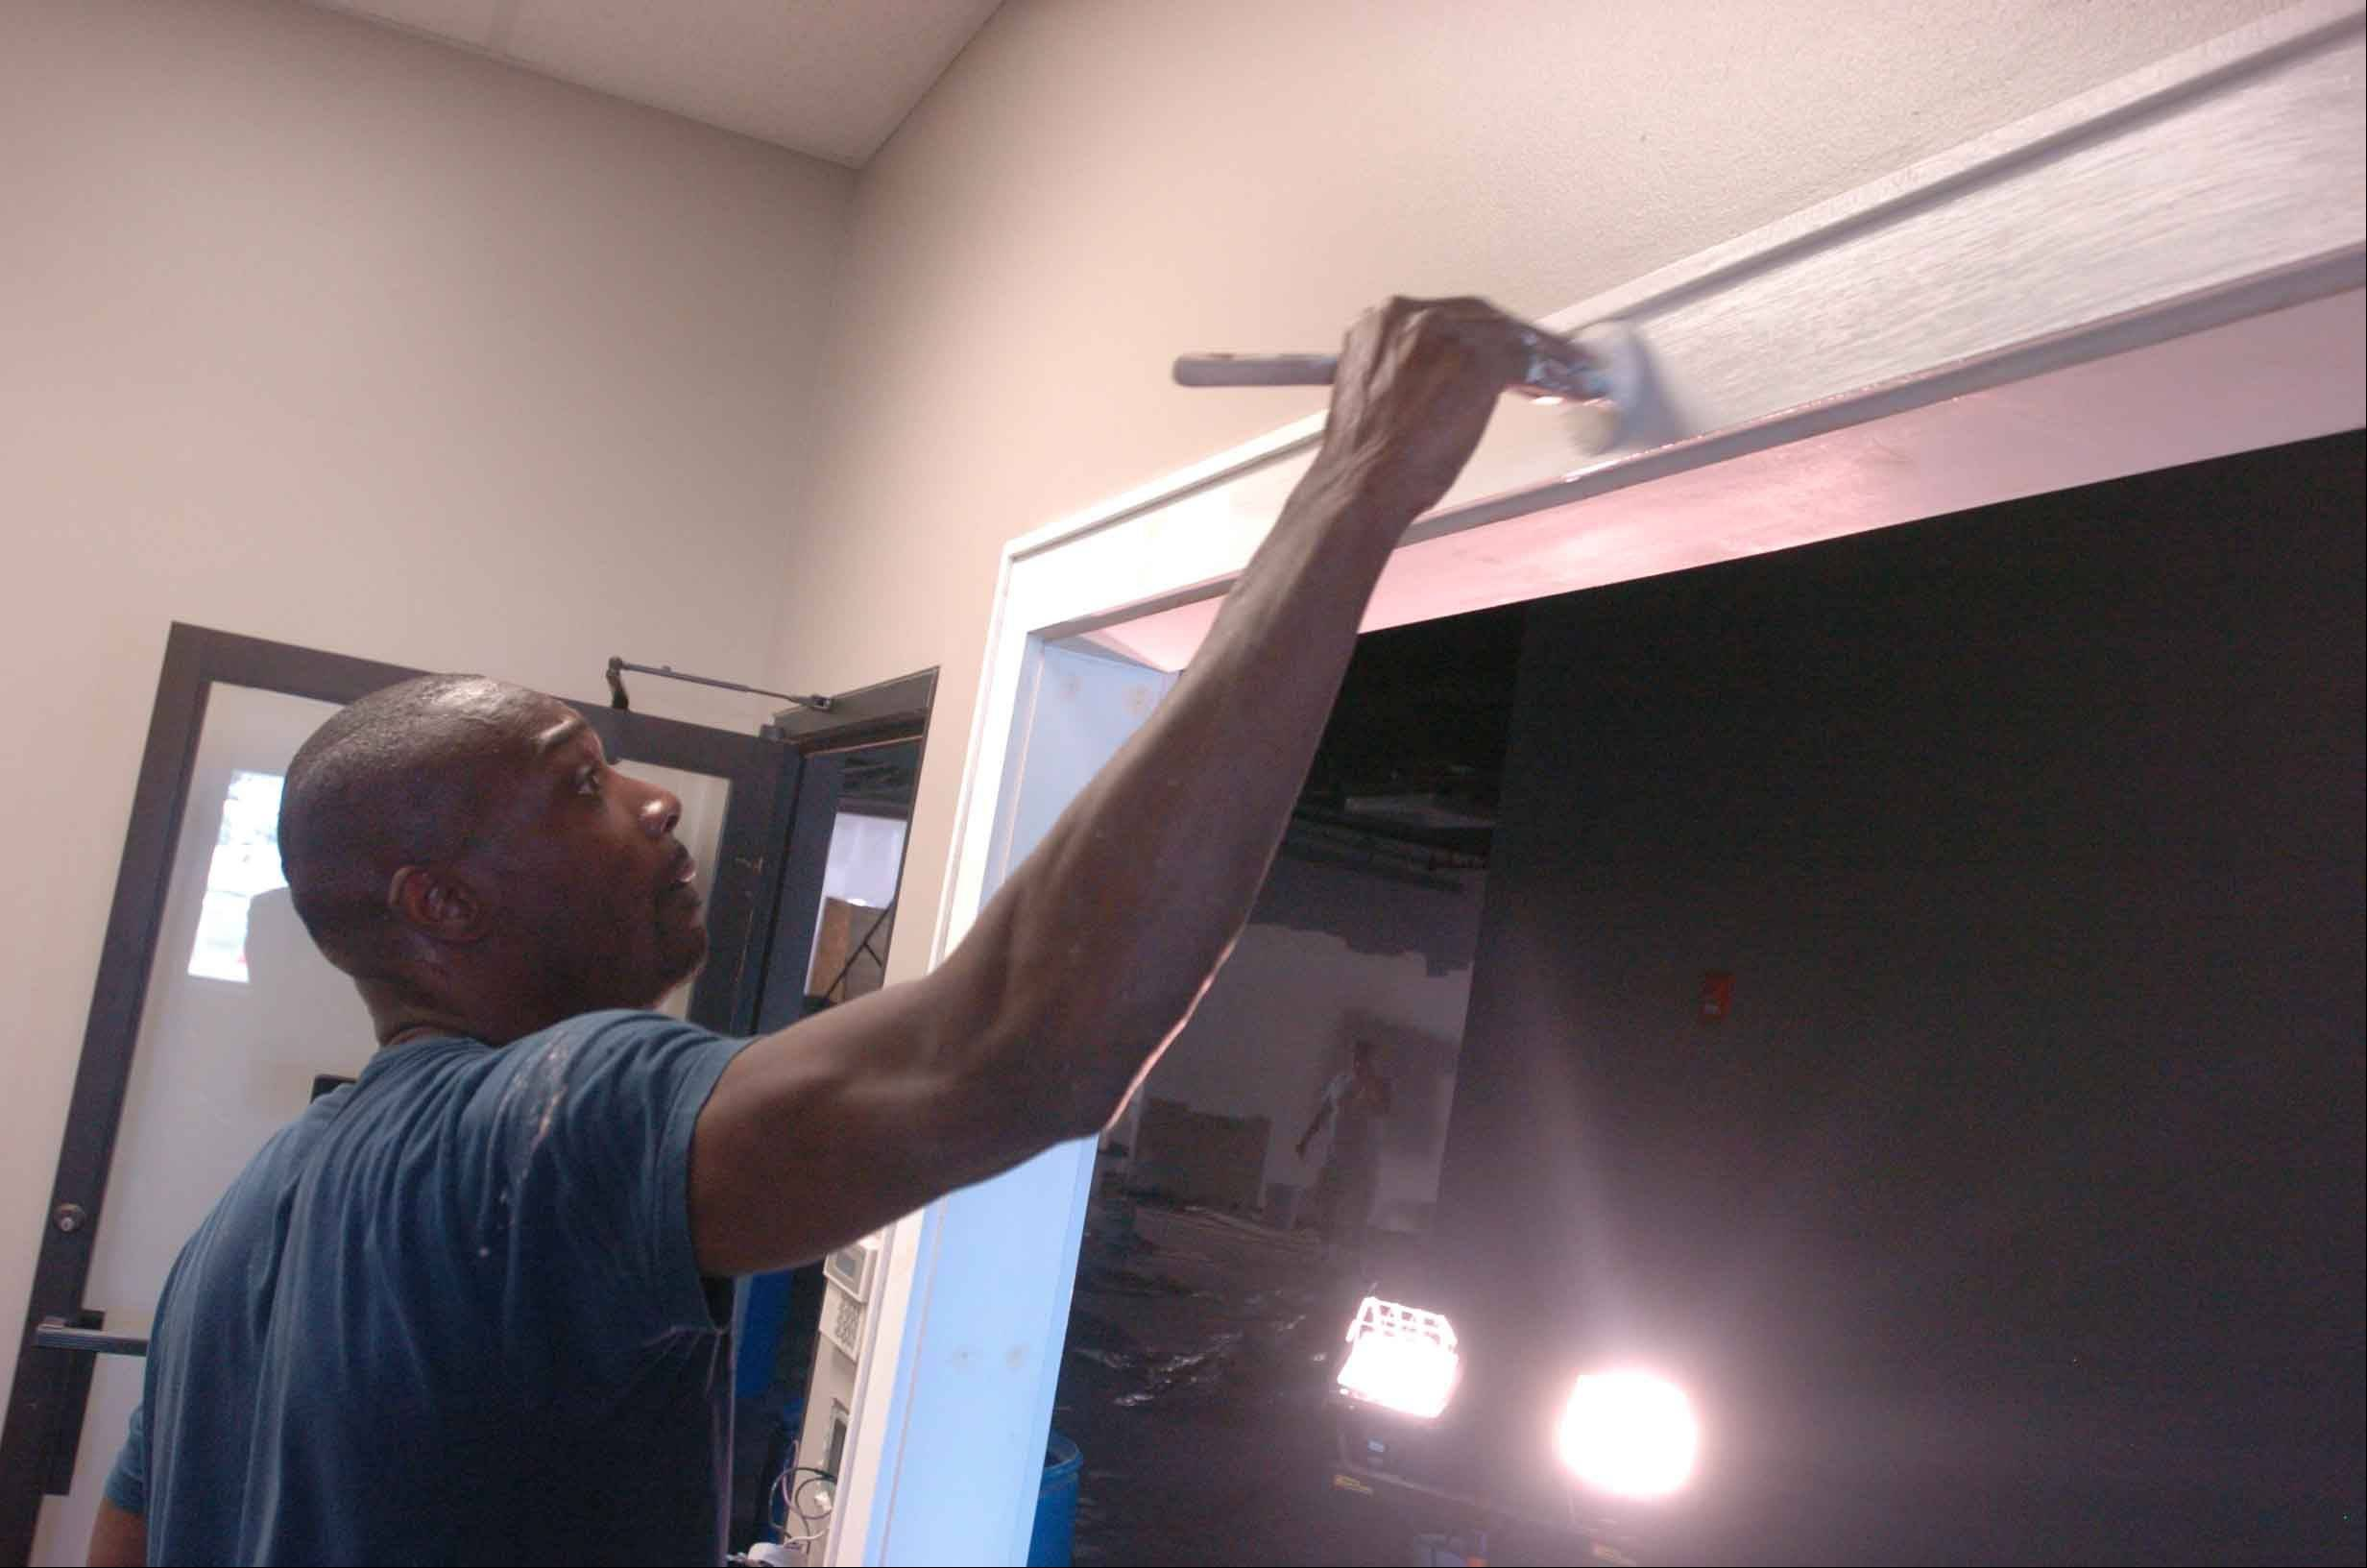 John McCulloush paints the box office at The Comedy Shrine in Aurora. Crews also painted over a unicorn to give one of the theaters its black box appearance.